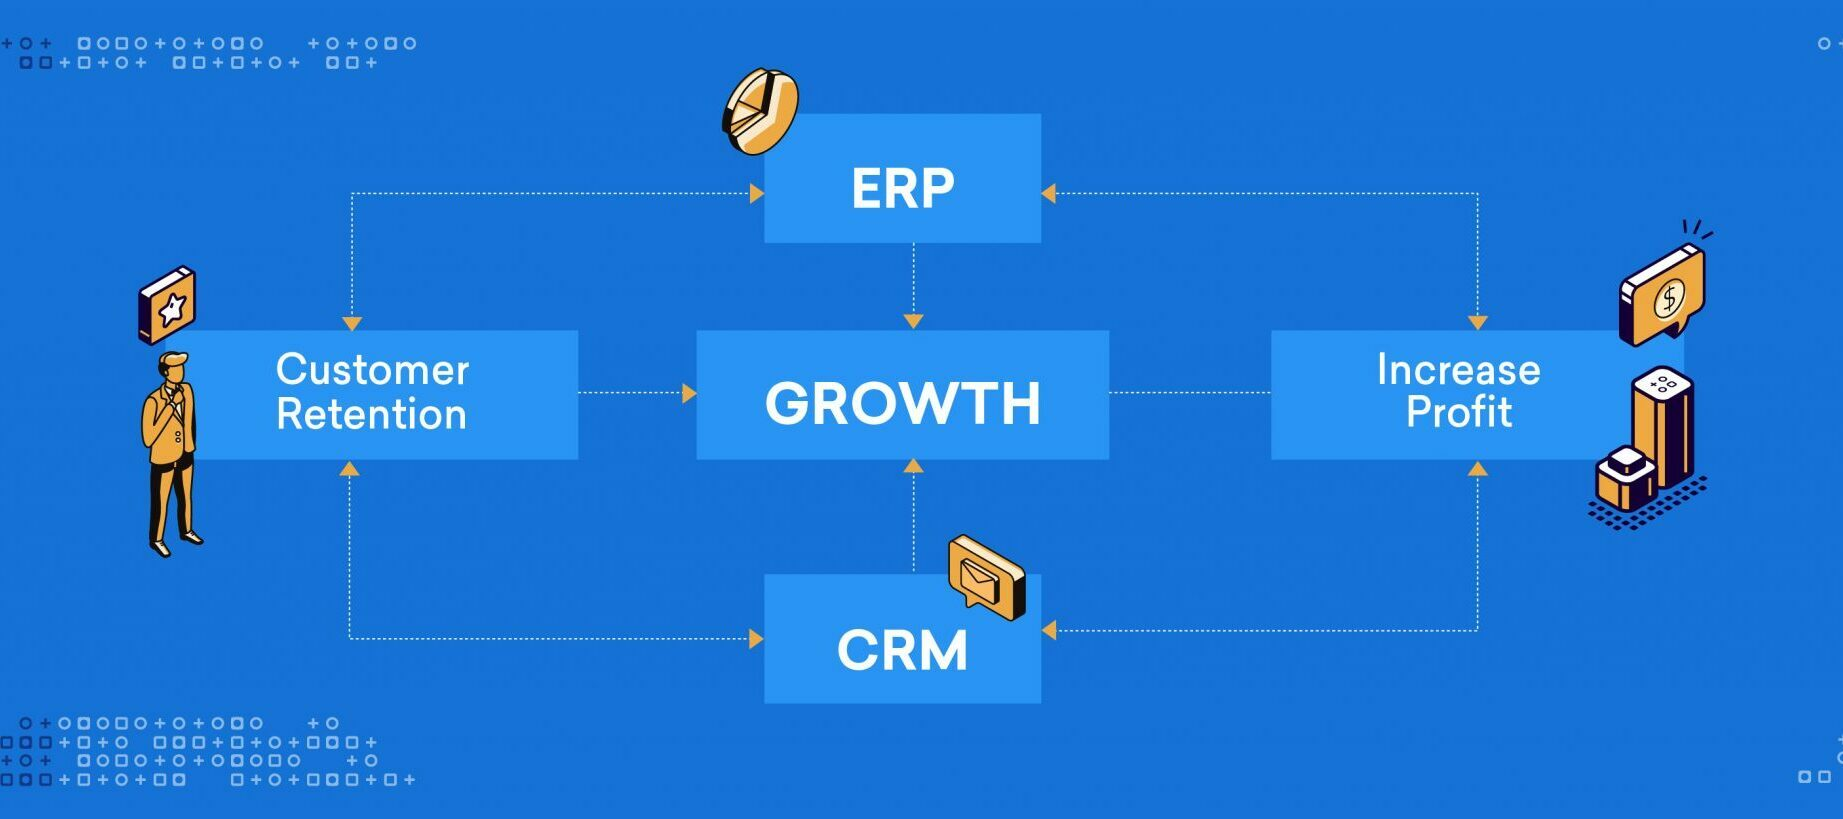 ERP Vs CRM: What's your pick?